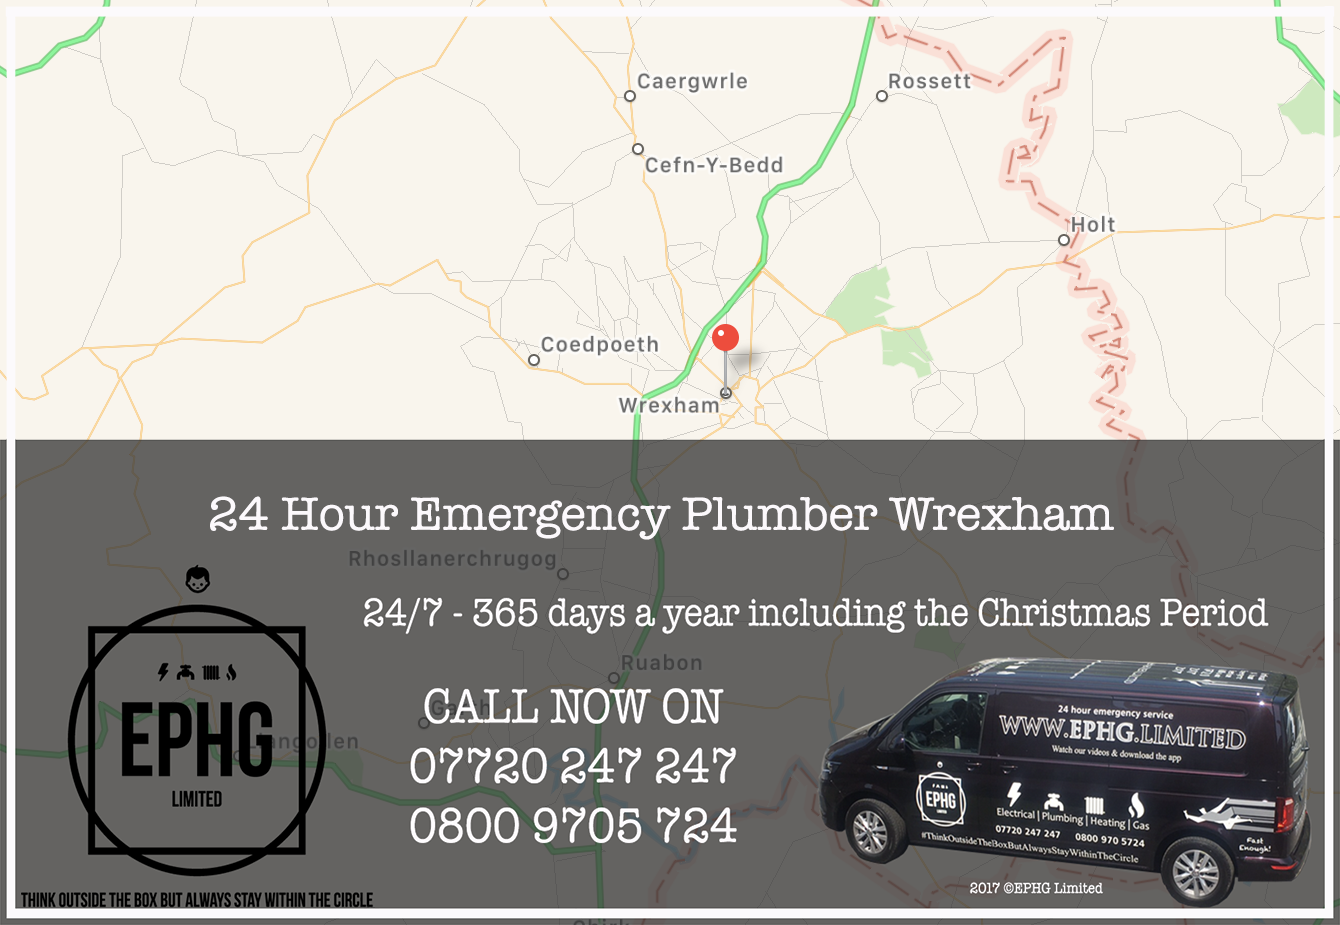 24 Hour Emergency Plumber Wrexham